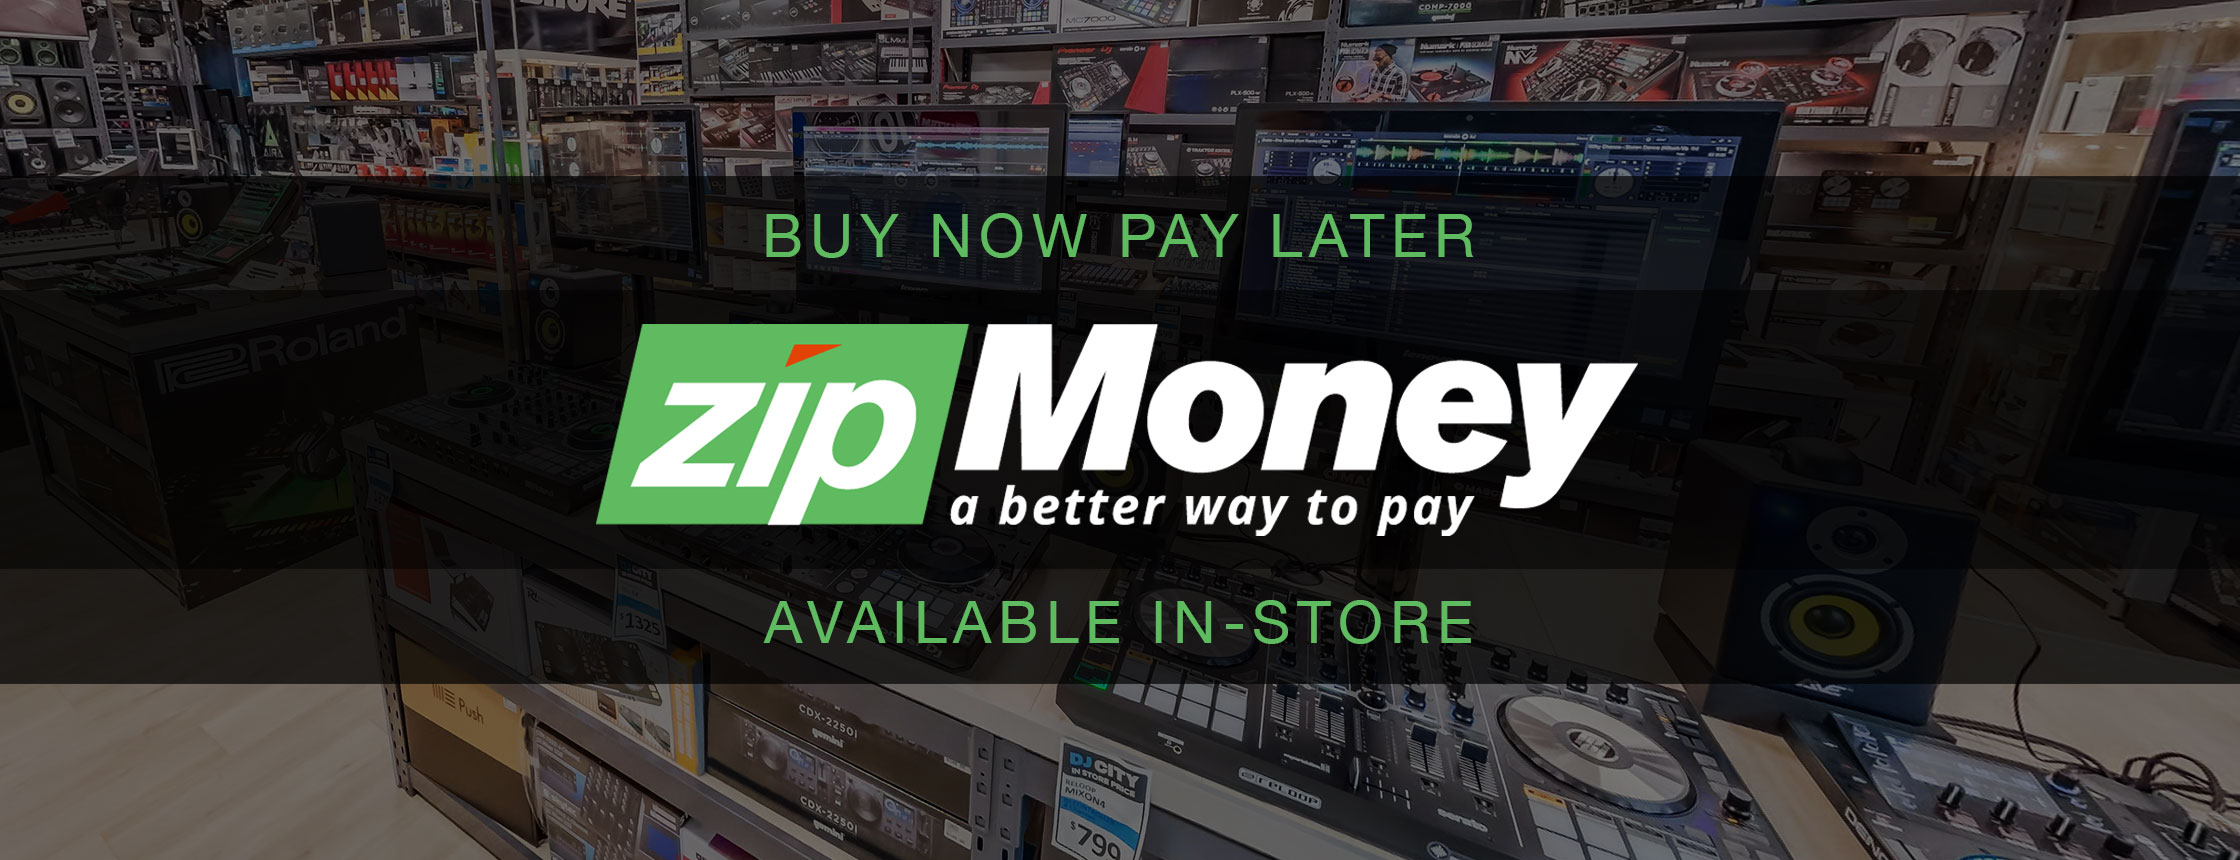 Zip Money Available In-store - DJ City